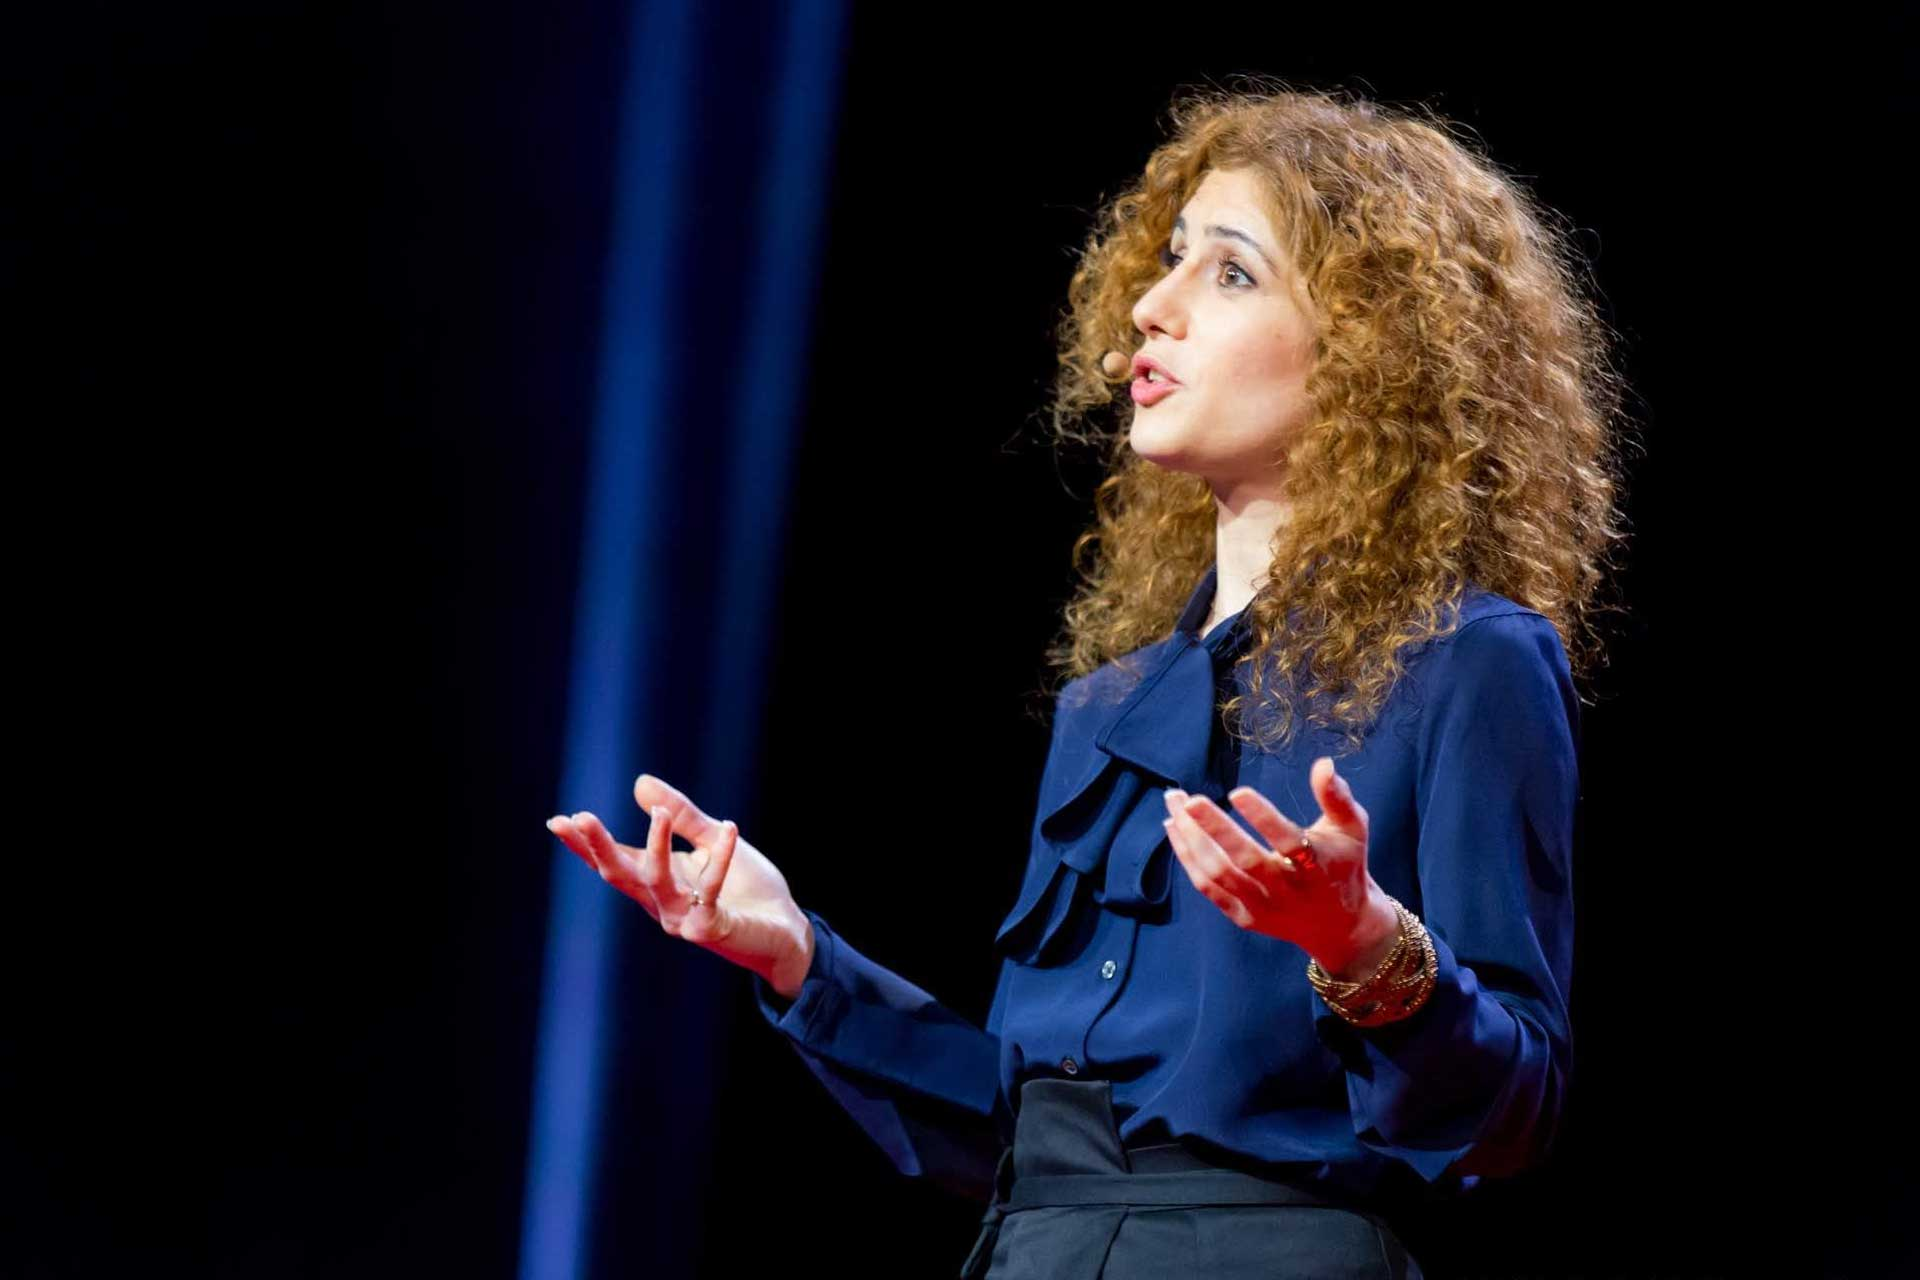 conference-TEDxParis-2015-7.jpg